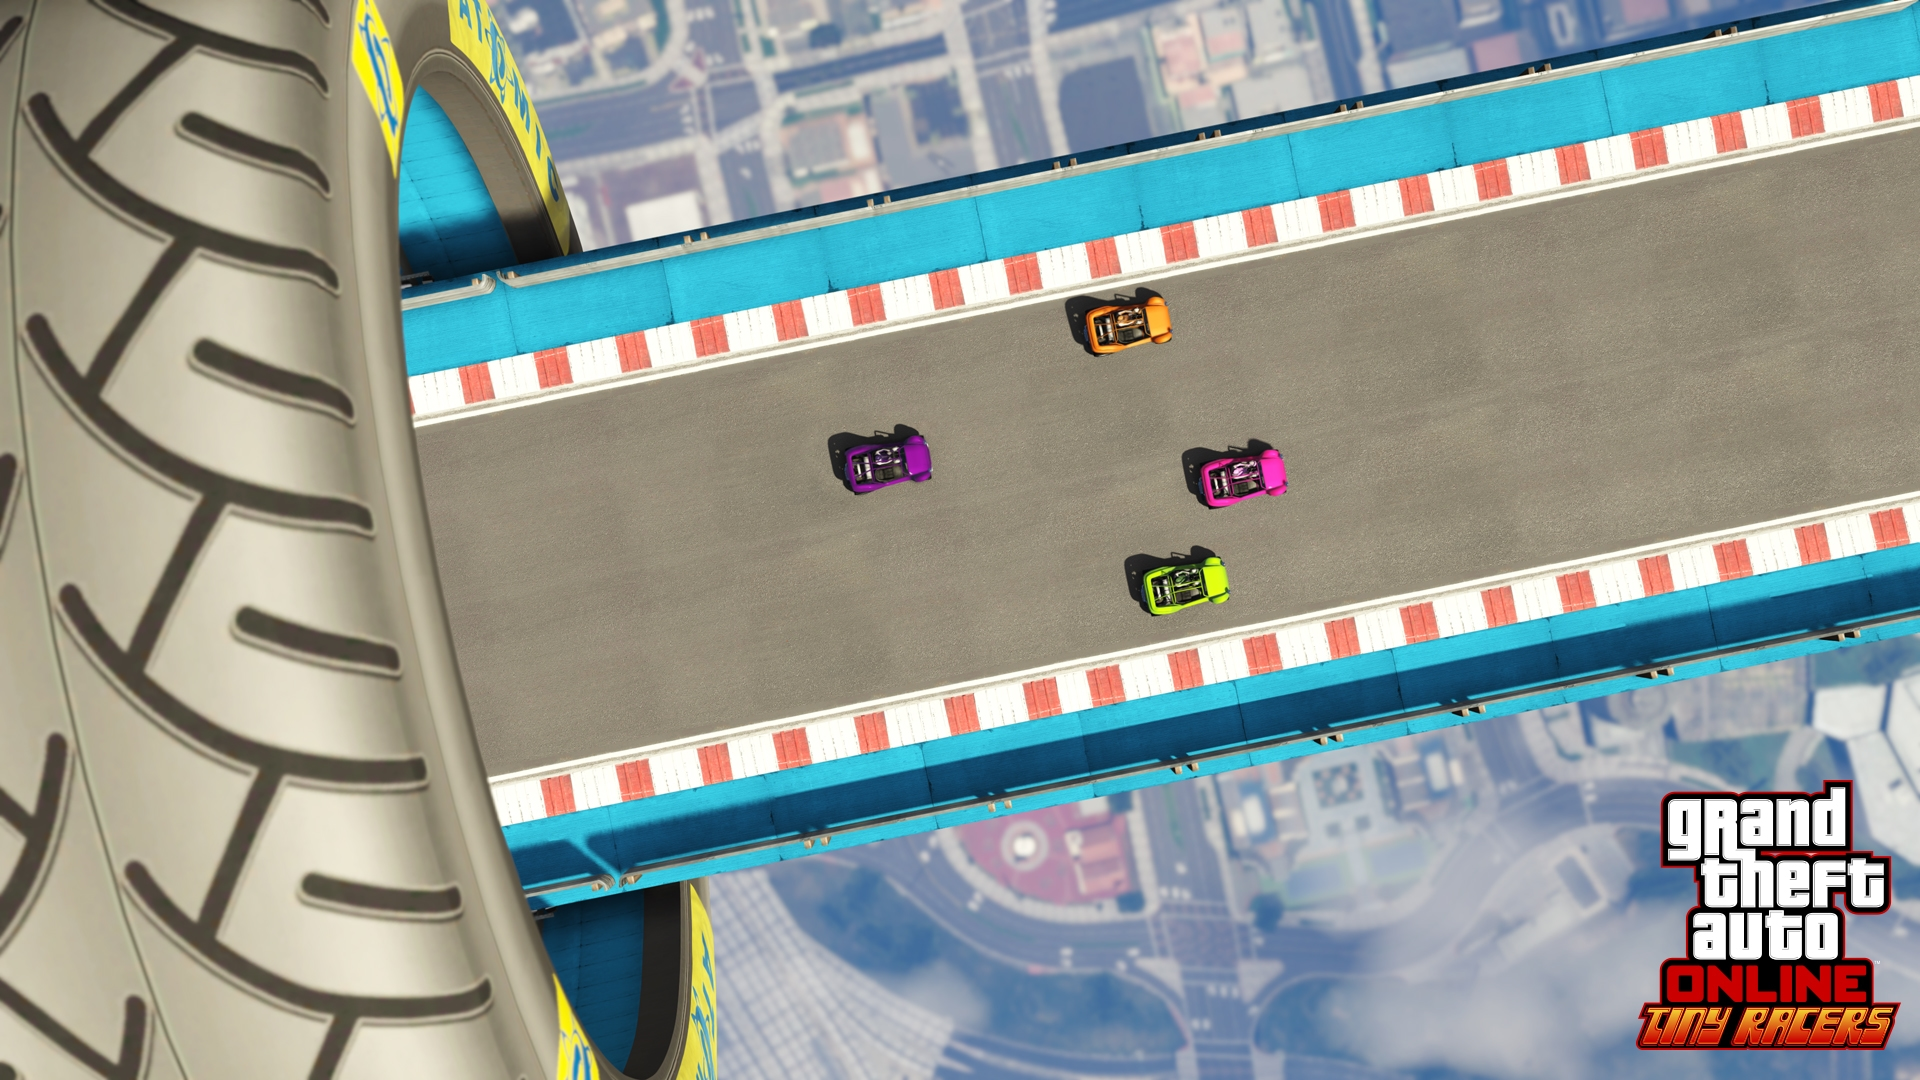 Tiny Racers Channels The Spirit Of Classic Gta Titles With A Shifting Birds Eye Perspective Designed To Bring You A New Flavor Of Vehicle Combat